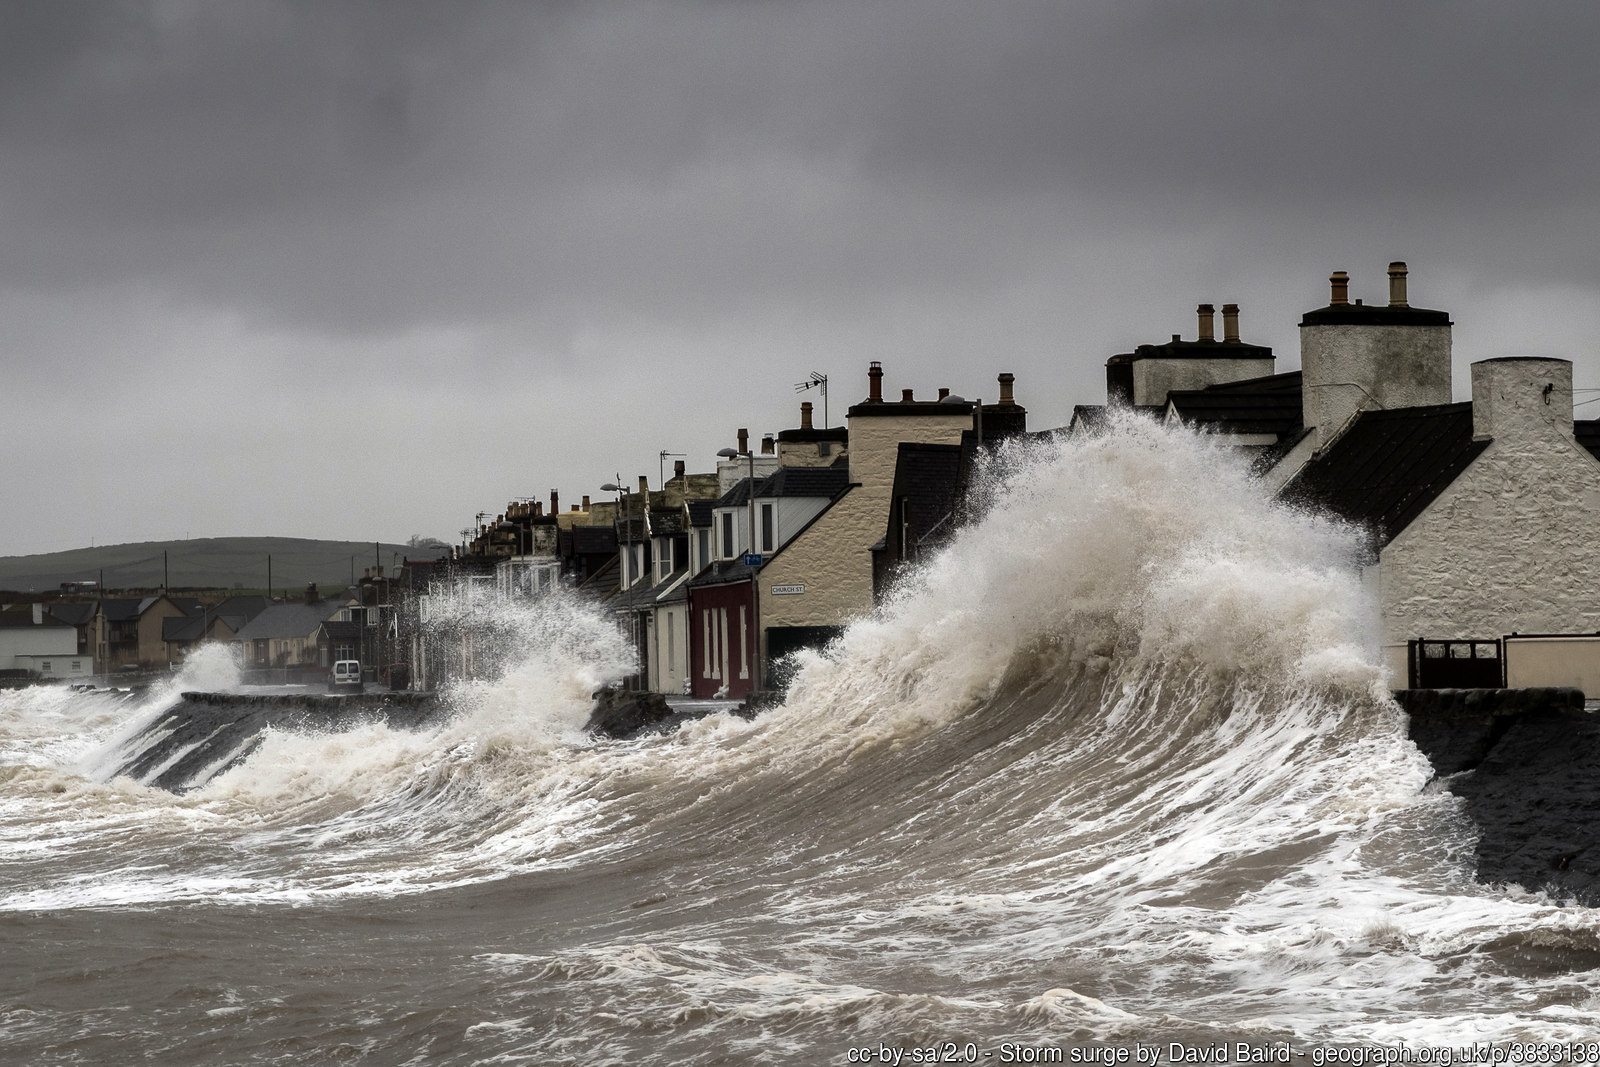 Guest Blog | Sea-level and coastal impacts: A rising tide lifts all risks